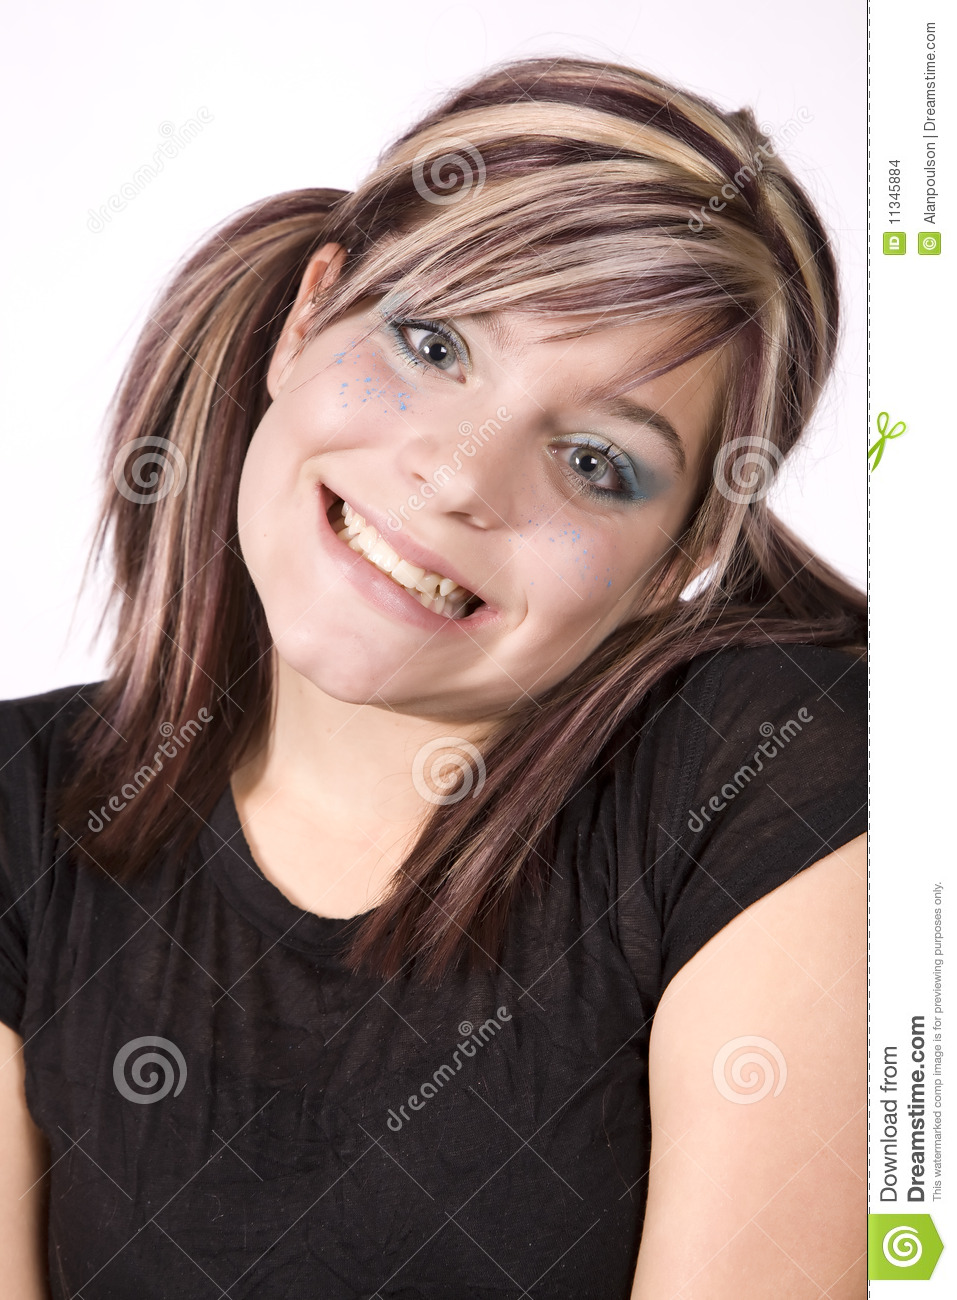 Expression Girl Happy Head Tilted Stock Photo - Image of ...